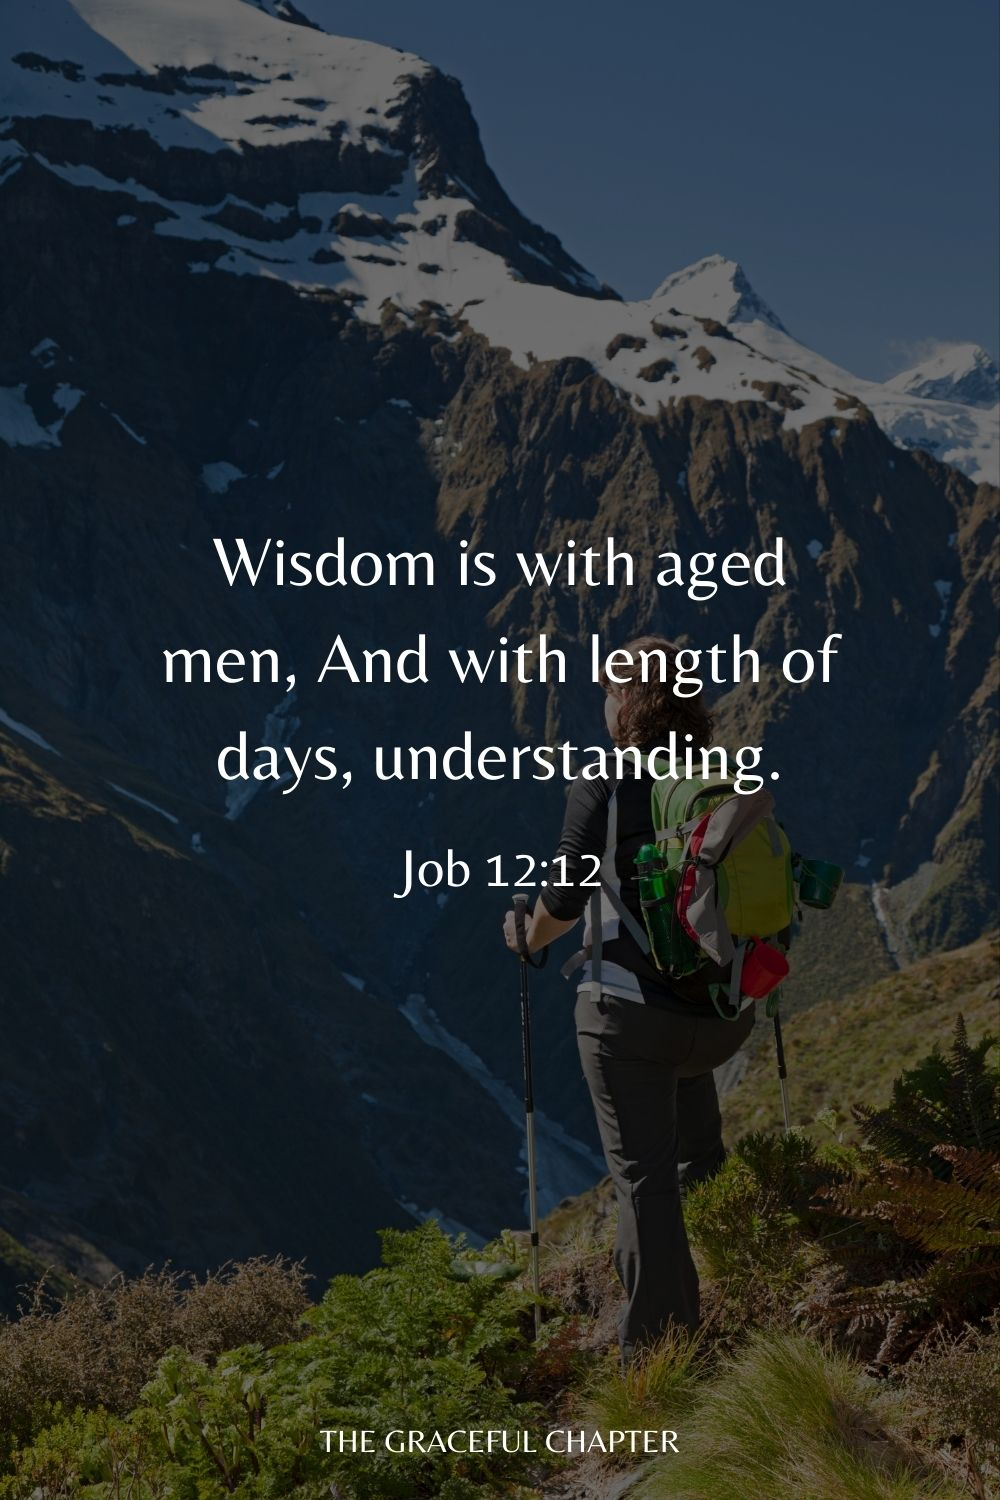 Wisdom is with aged men, And with length of days, understanding. Job 12:12